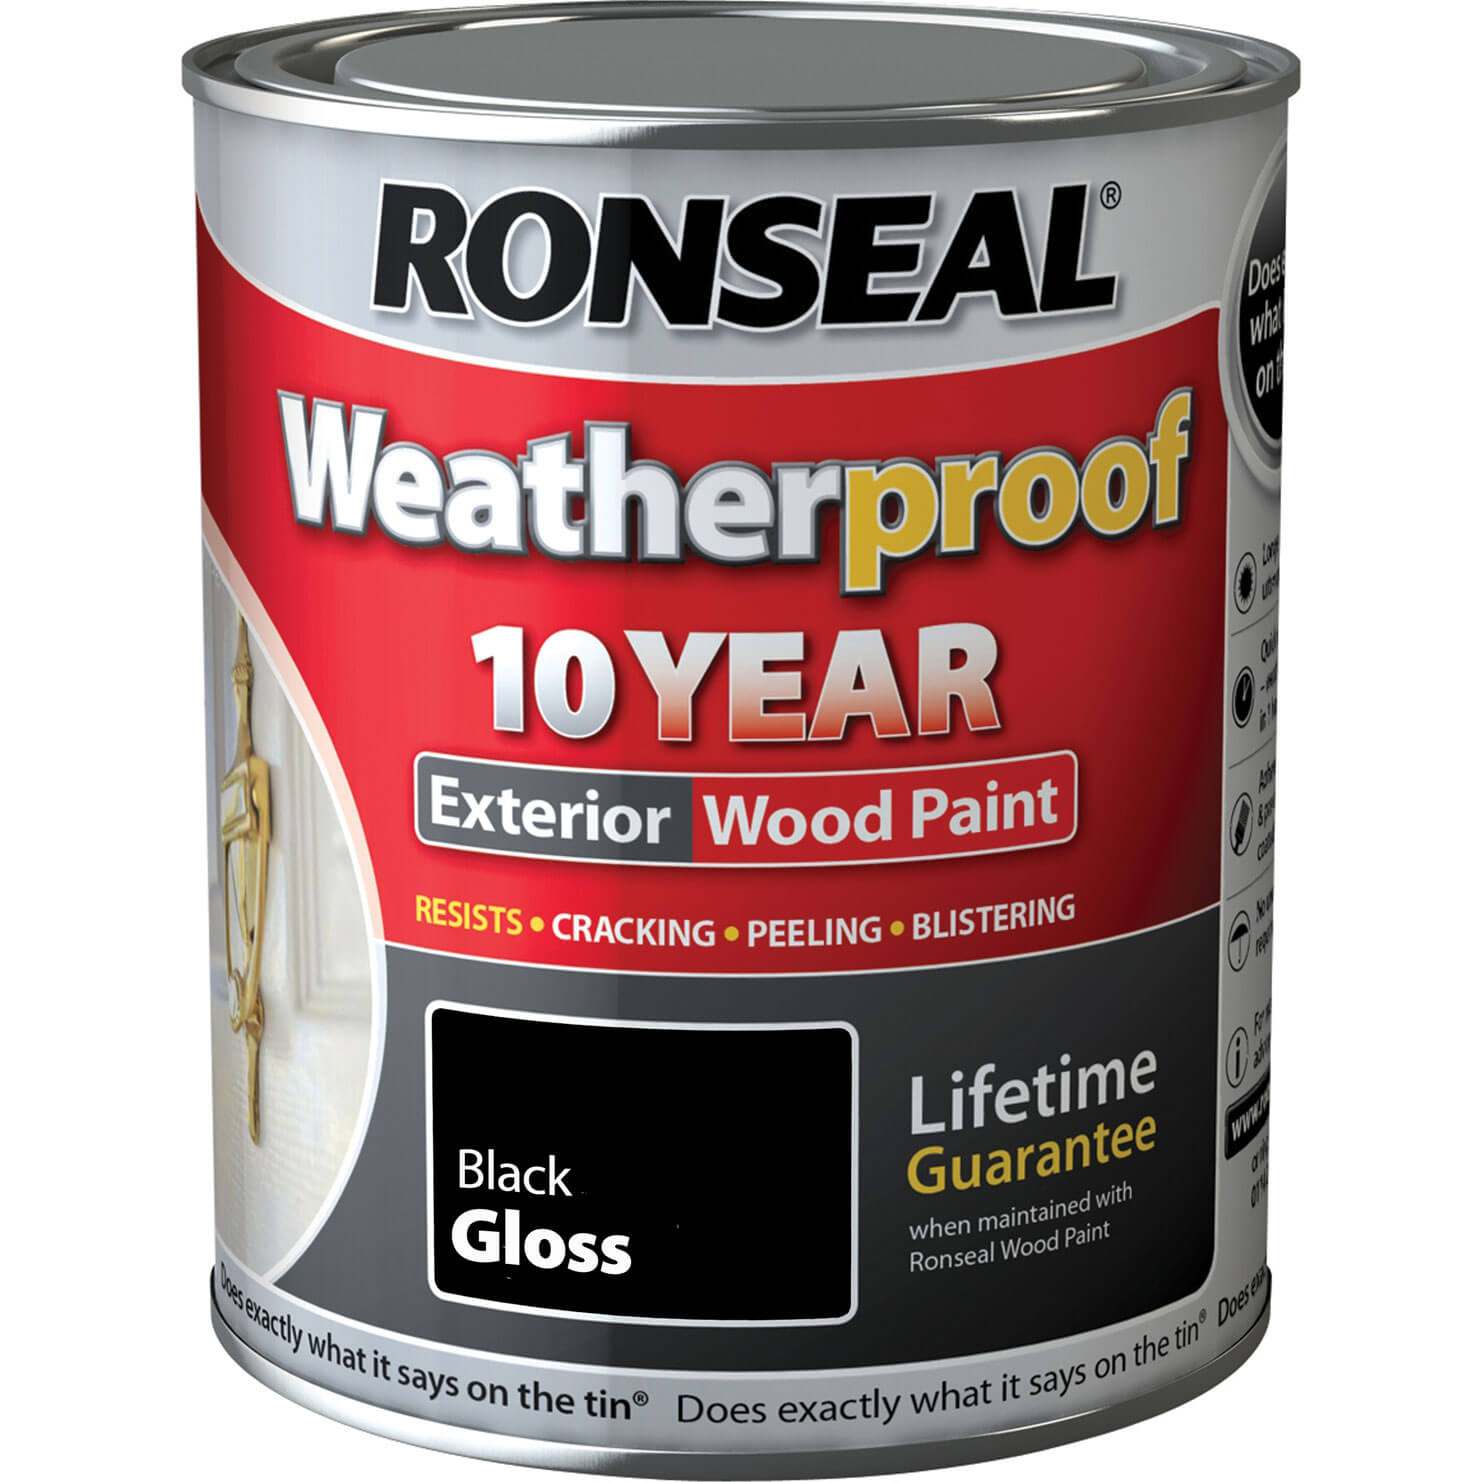 Ronseal weatherproof 10 year exterior wood paint black gloss 25 litre - Sadolin exterior wood paint image ...